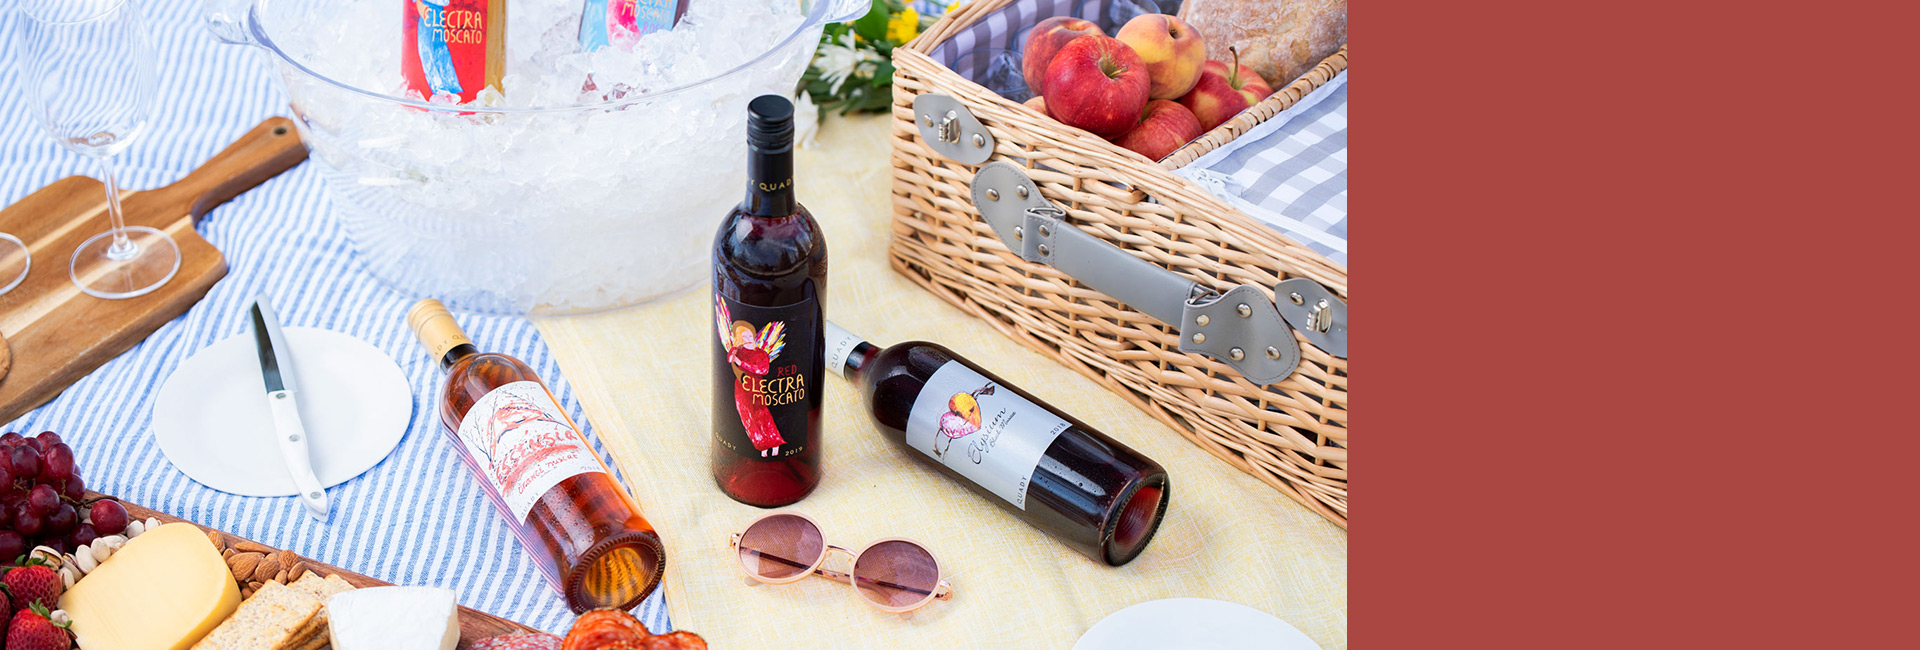 Picnic setting with bottles of Red Electra Moscato, Essensia Orange Muscat dessert wine and Elysium Black Muscat dessert wine.